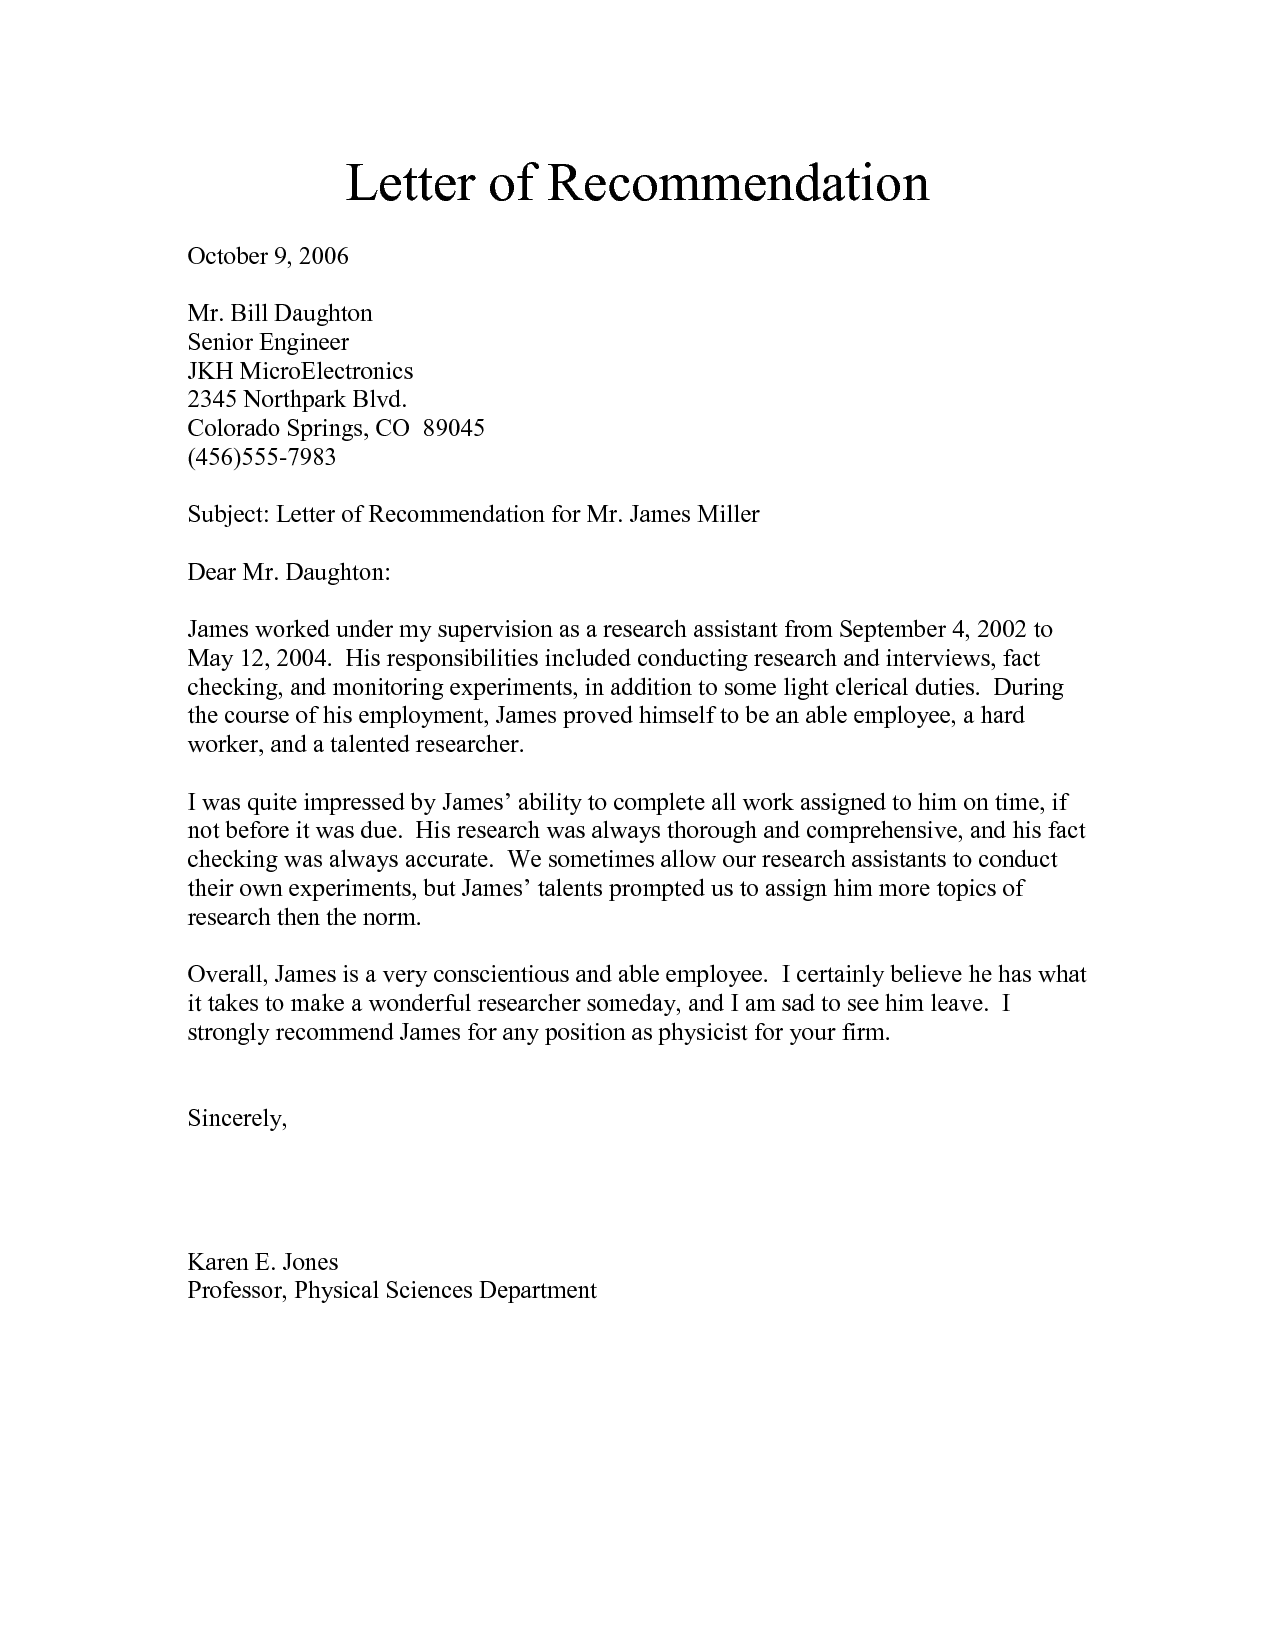 Free Recommendation Letter Download | RallyPoint